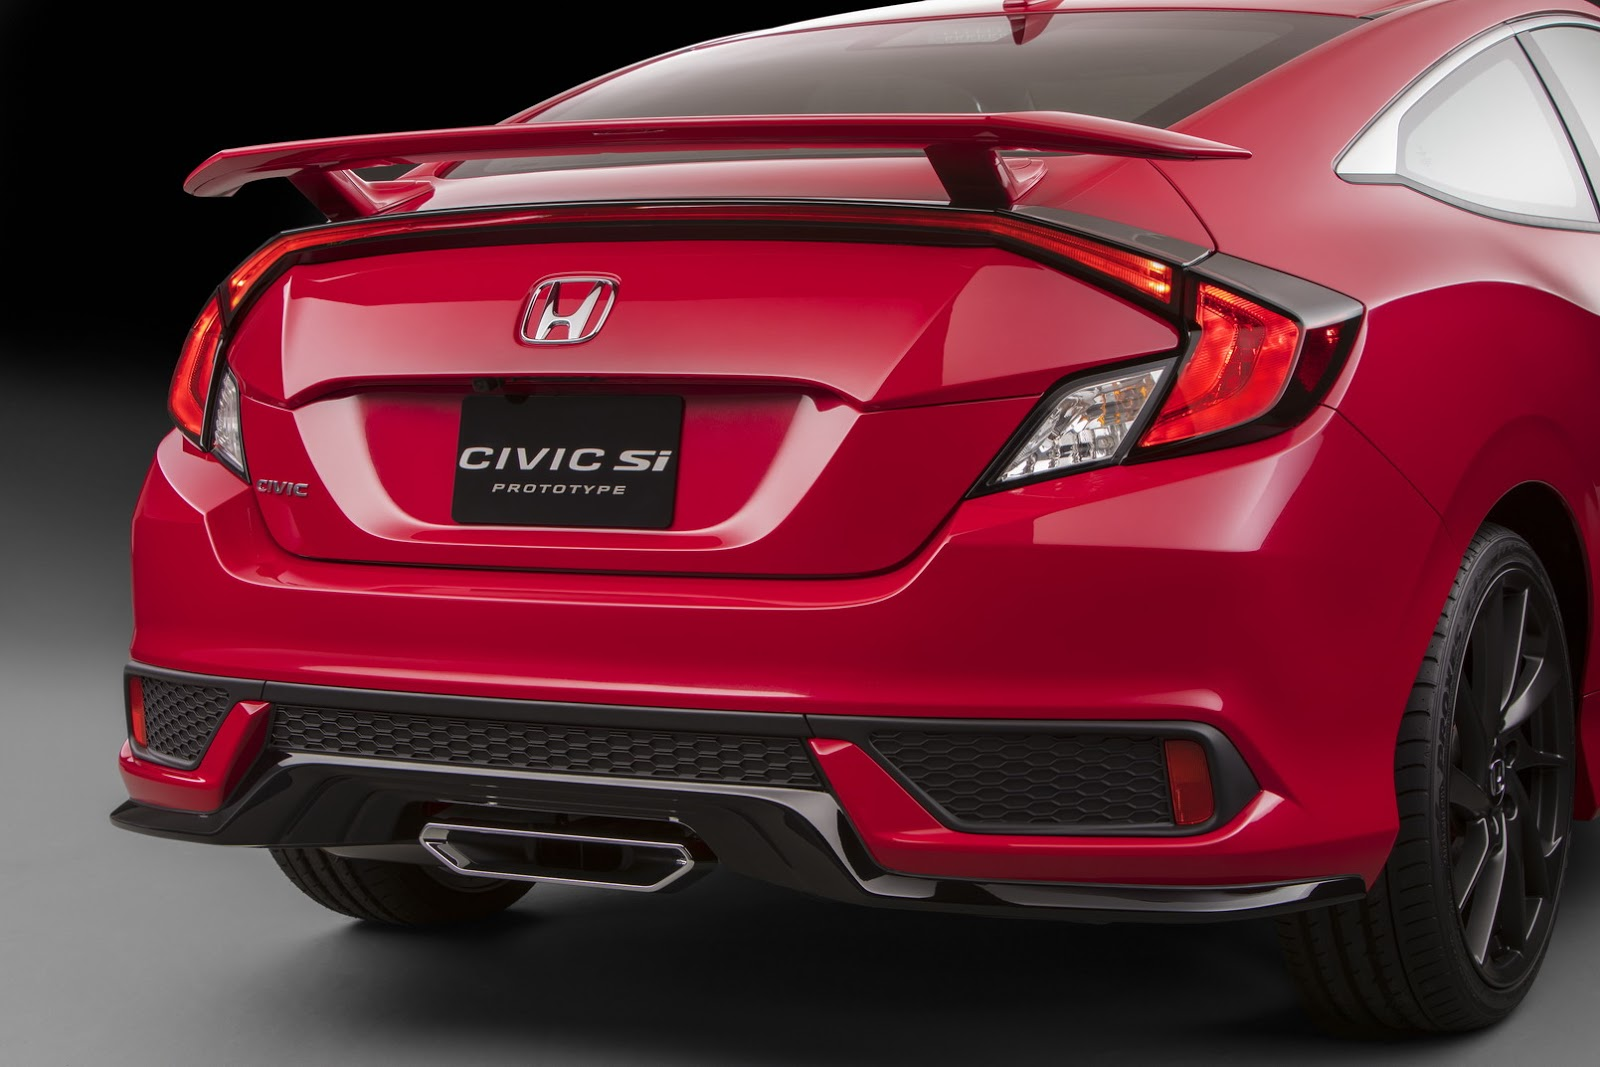 Honda Civic Type R Concept Ii Looks Awesome In Paris Live Photos additionally Honda Civic Coupe Si together with Honda Civic Si Coupe Review likewise New Bmw Series Edition Sport Coupe moreover Hondacivicsedansius. on 2008 honda civic si coupe